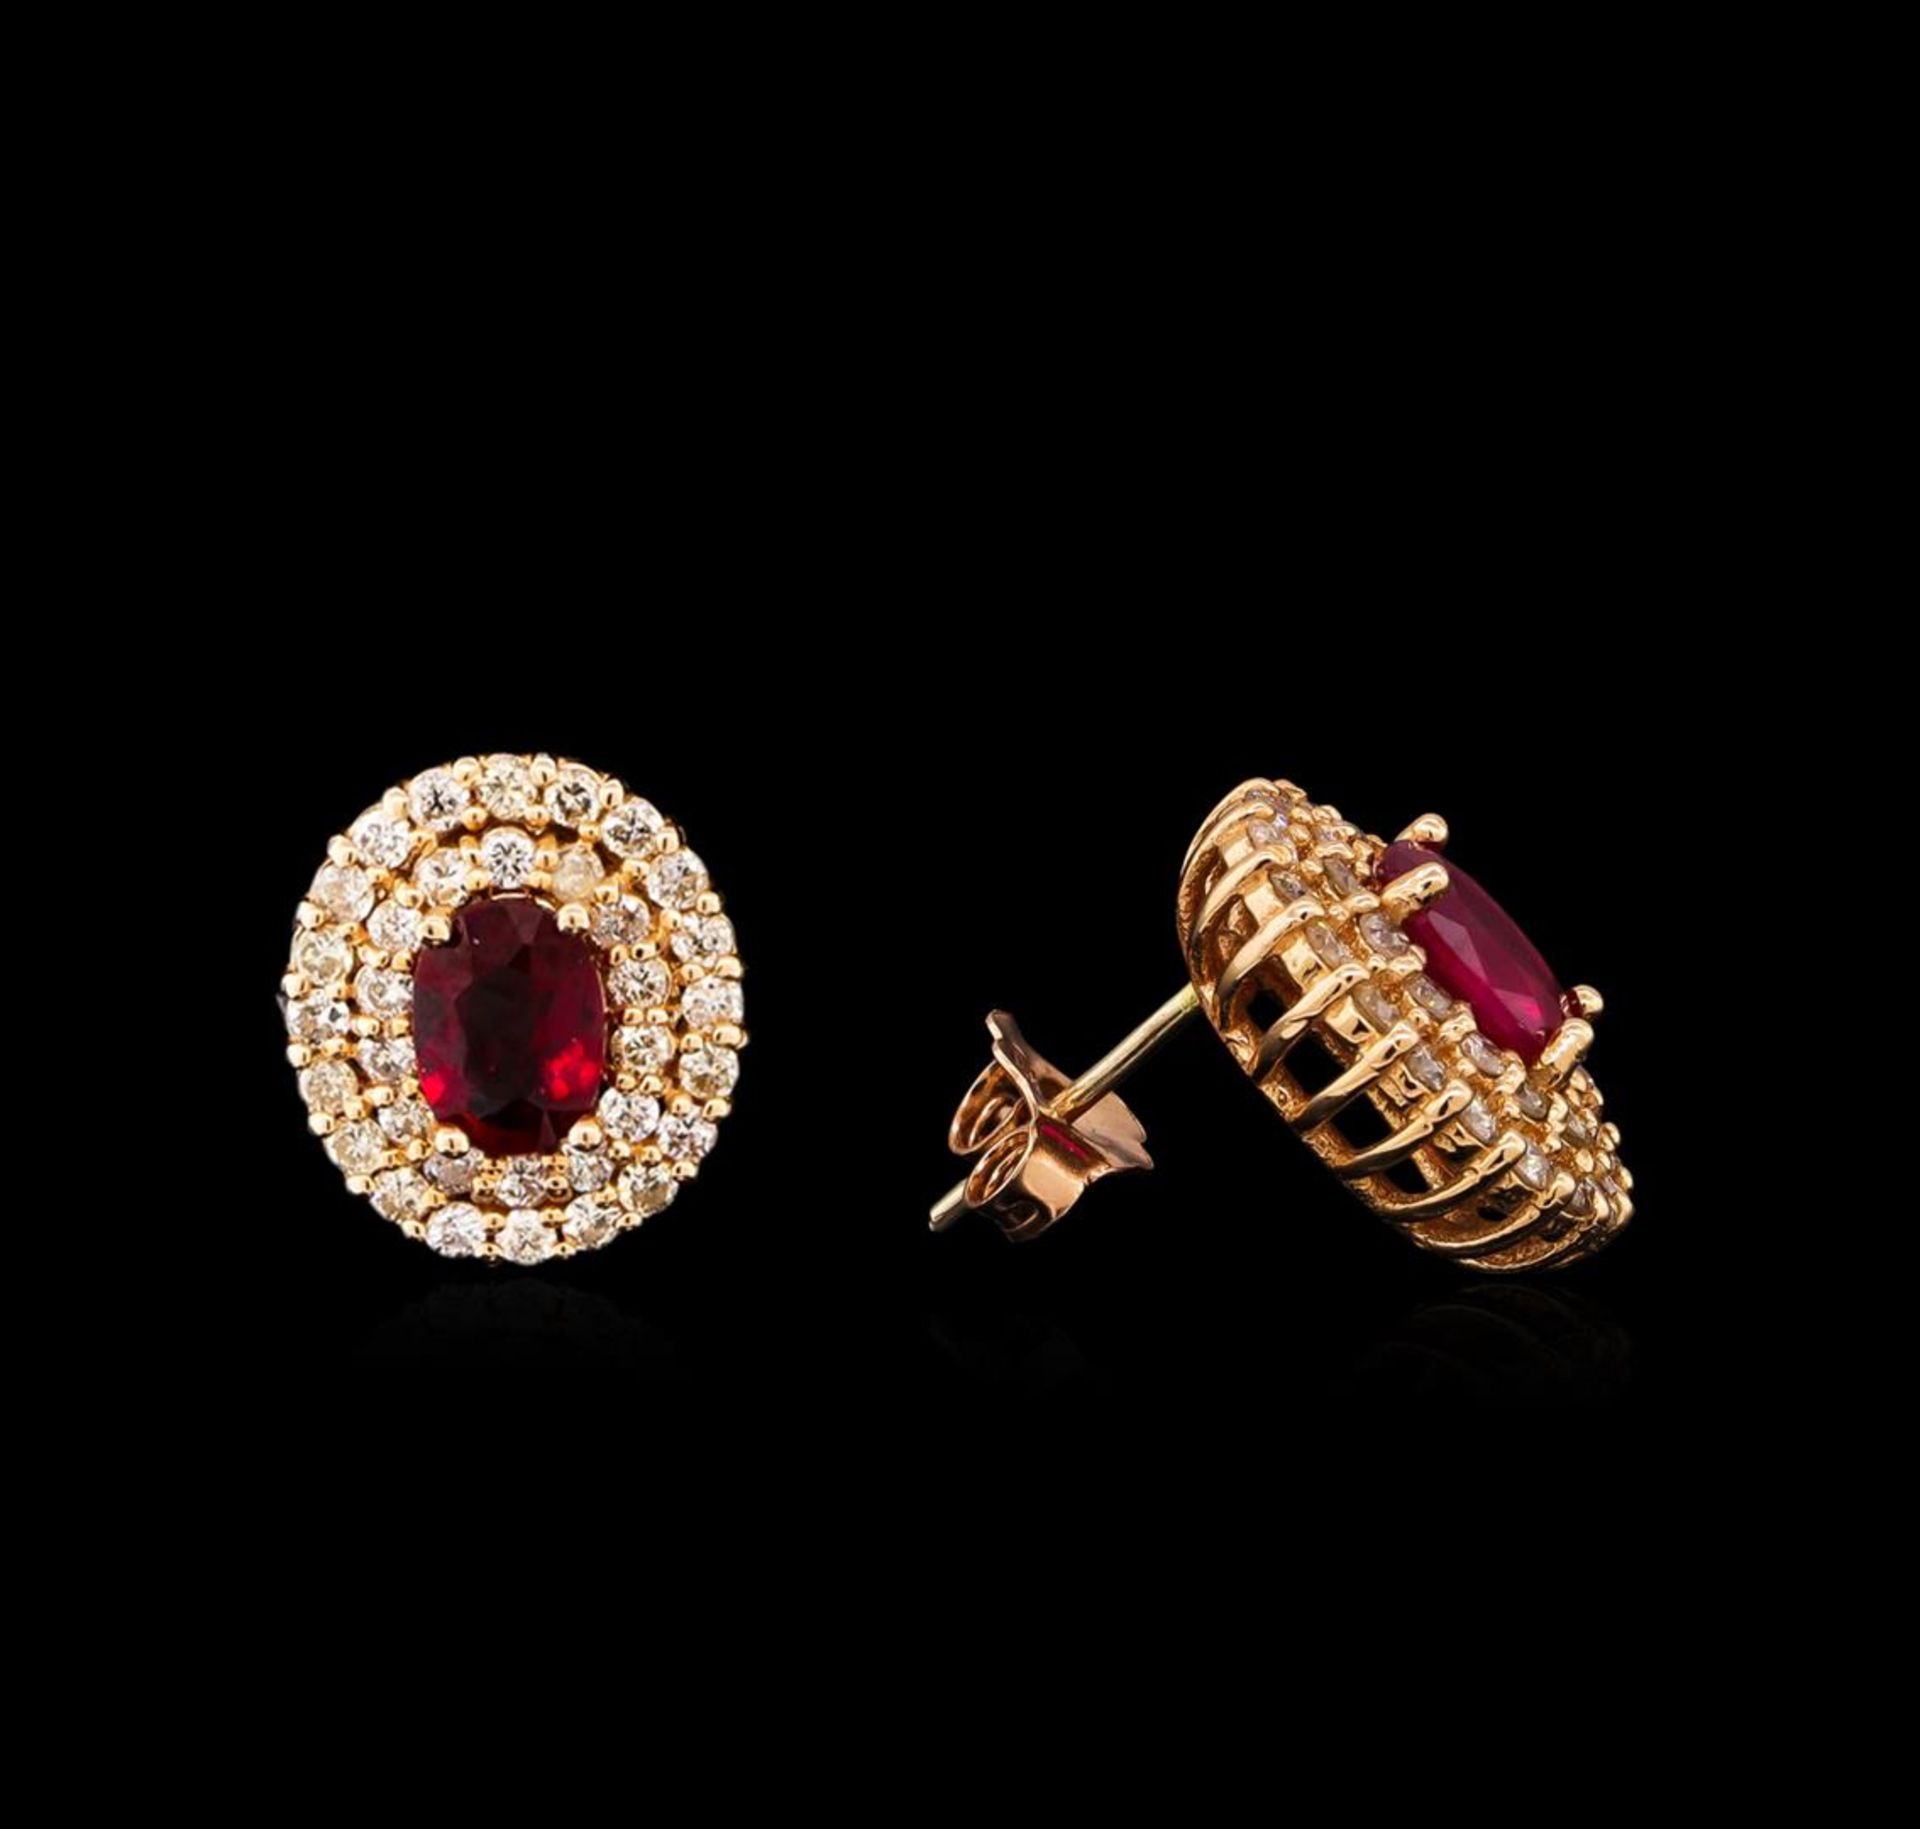 14KT Rose Gold 2.07ctw Ruby and Diamond Earrings - Image 2 of 3